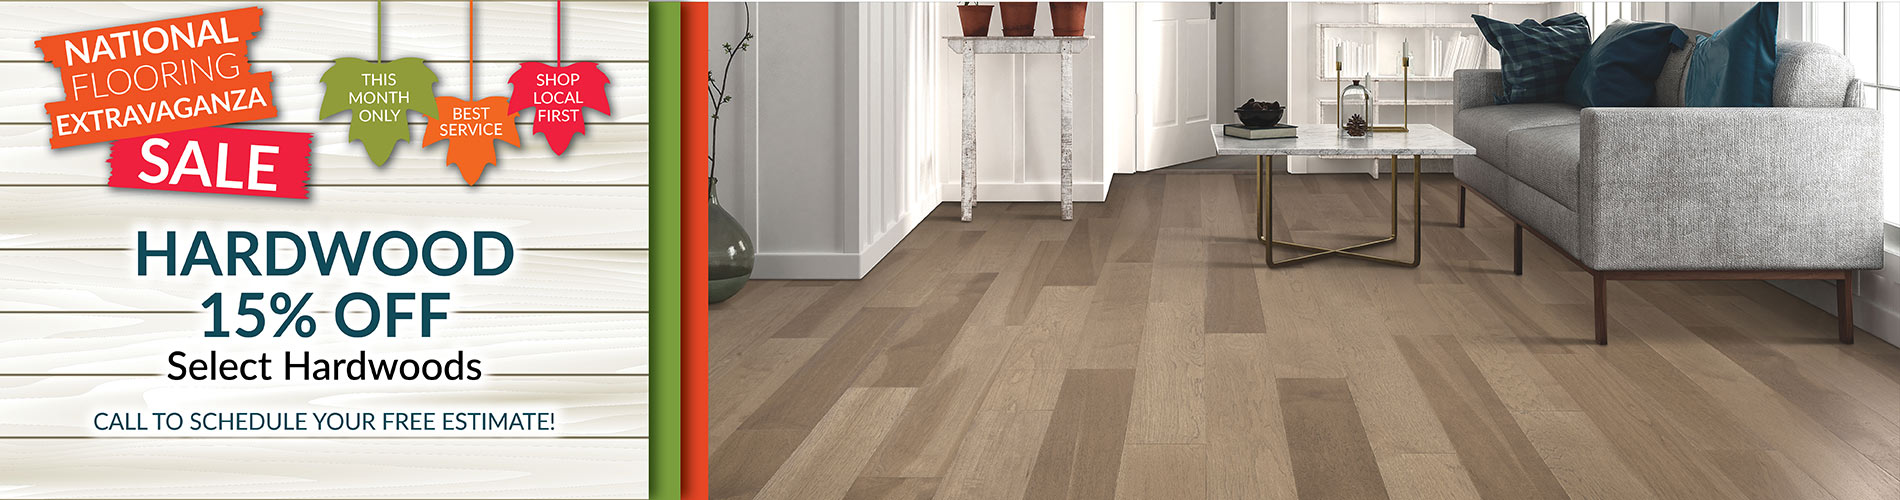 National Flooring Extravaganza Sale Going On Now! 15% off select hardwood – Call to schedule your free estimate!